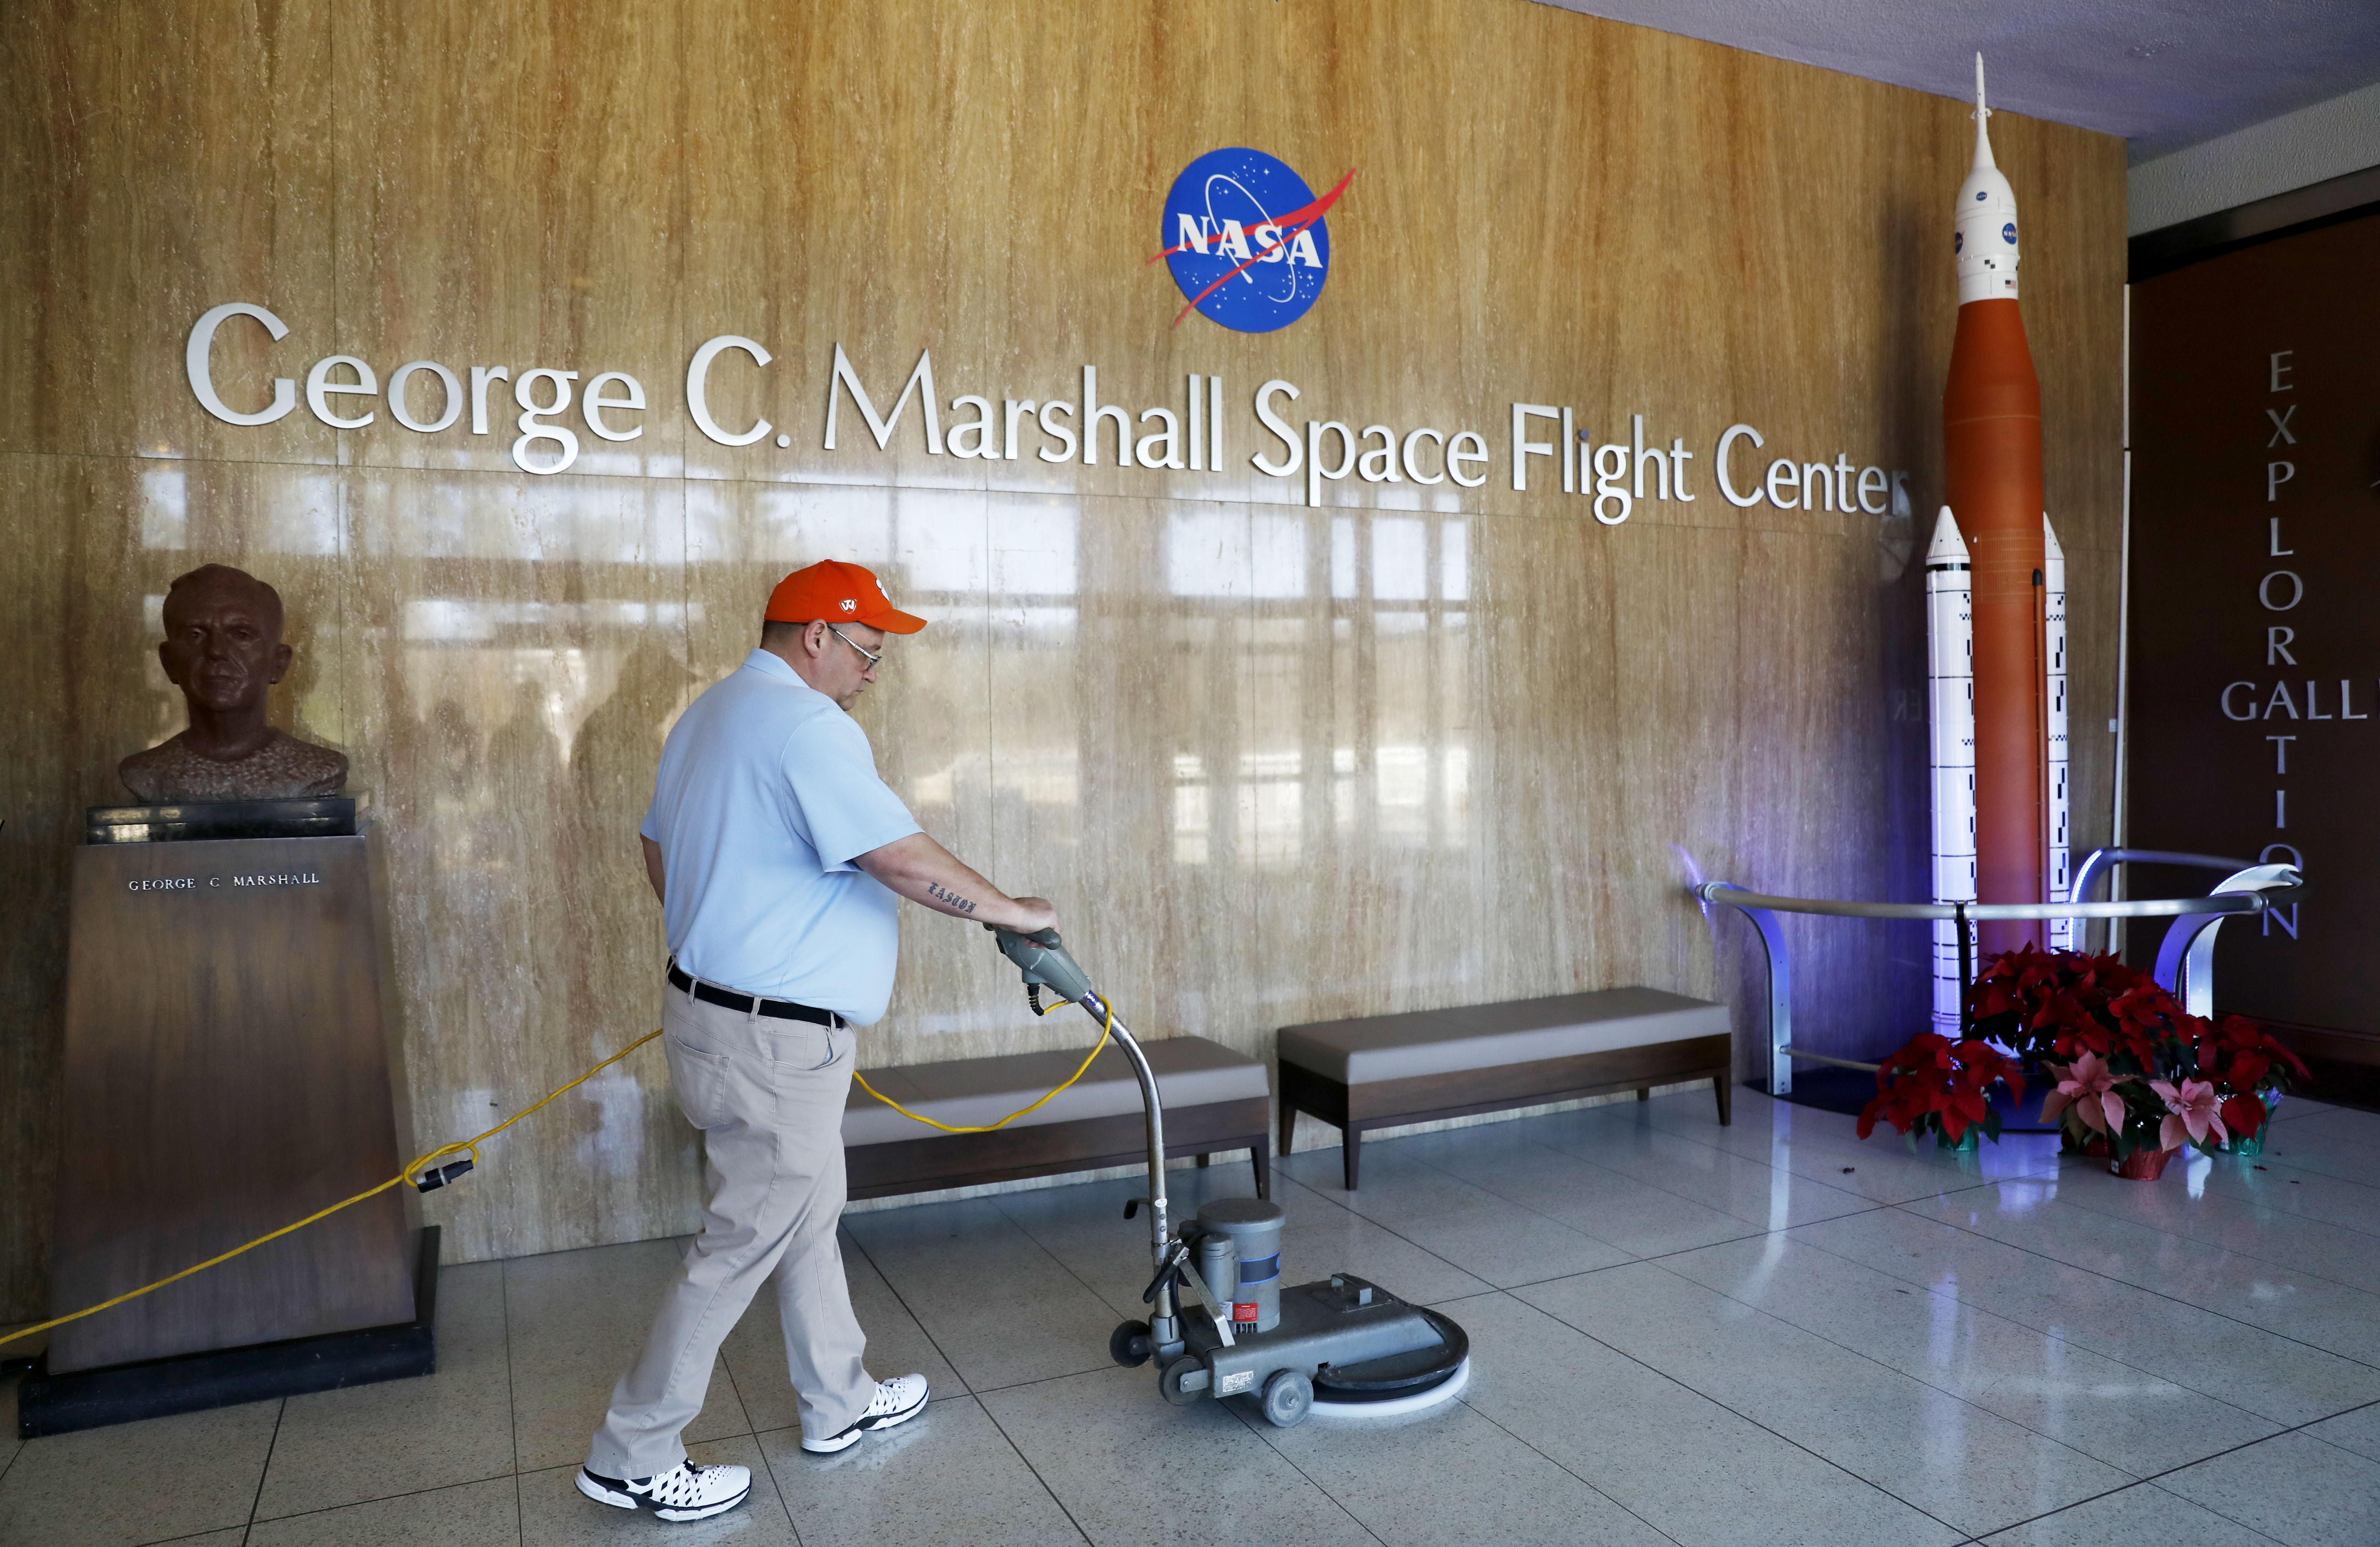 A worker cleans the floors at NASA's Marshall Space Flight Center, which has been impacted by the partial federal government shutdown at the Army's Redstone Arsenal in Huntsville, Ala., Wednesday, Jan. 9, 2019. Located at the base of a mountain in the lush Tennessee Valley, Huntsville was just another Alabama city until the government decided to build rockets at Redstone Arsenal at the dawn of the space race. (David Goldman/AP)